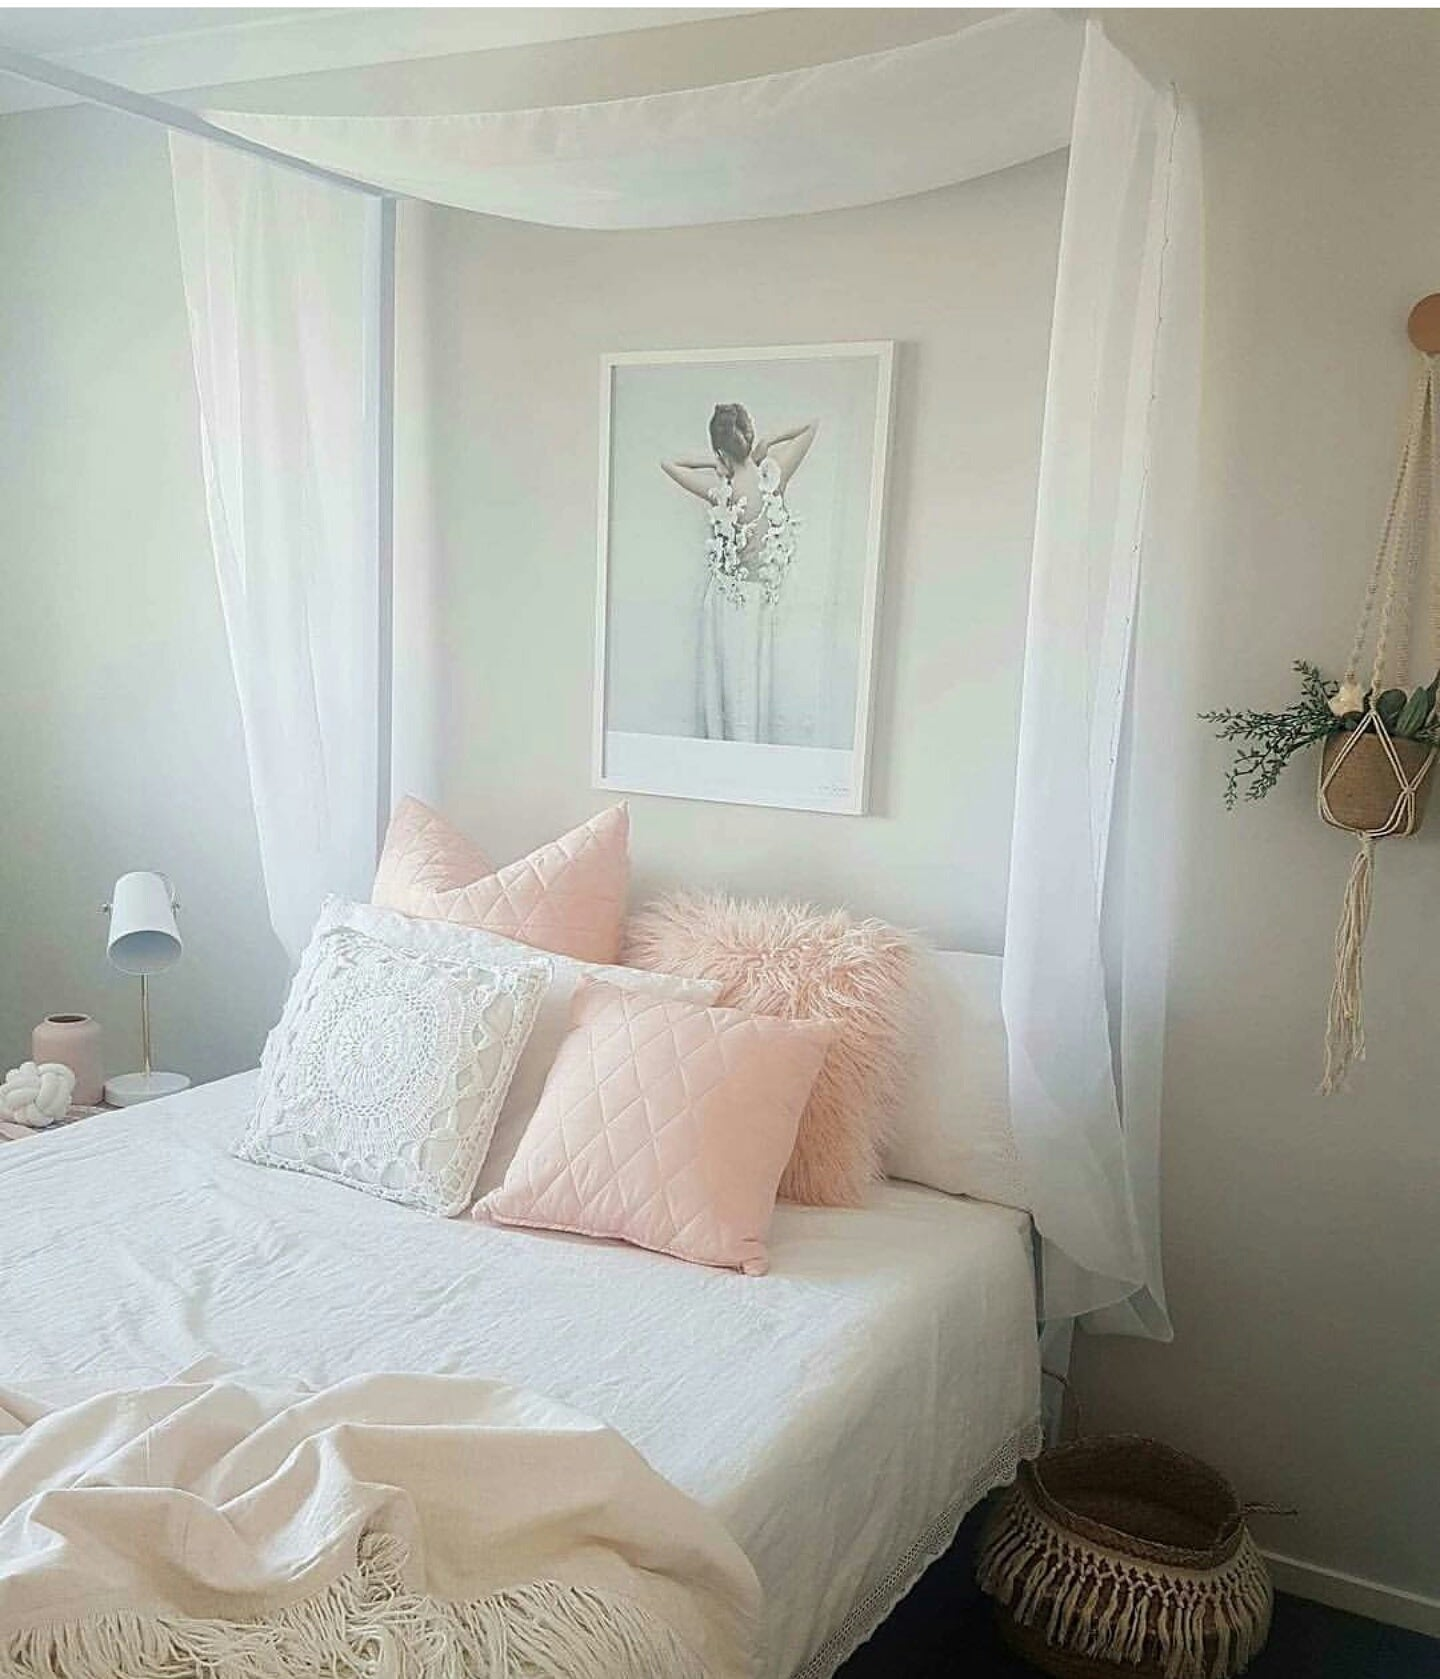 Willow 4 Poster Bed By Hypersonic